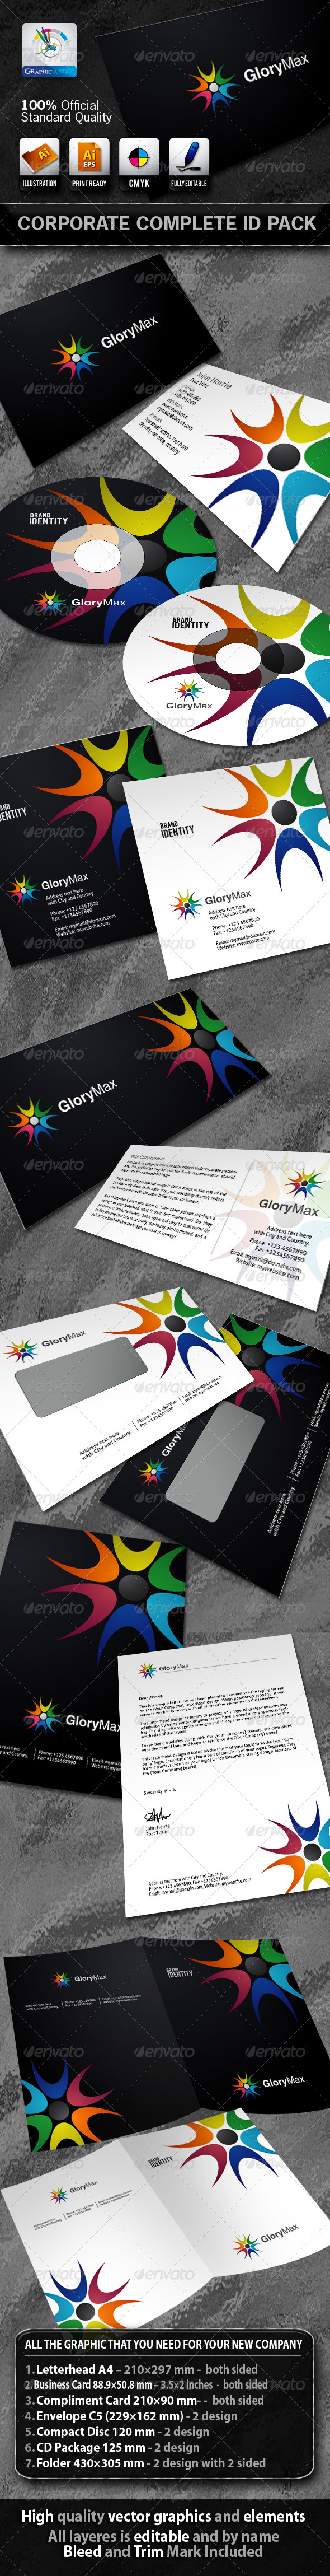 GloryMax Business Corporate ID Pack With Logo - Stationery Print Templates